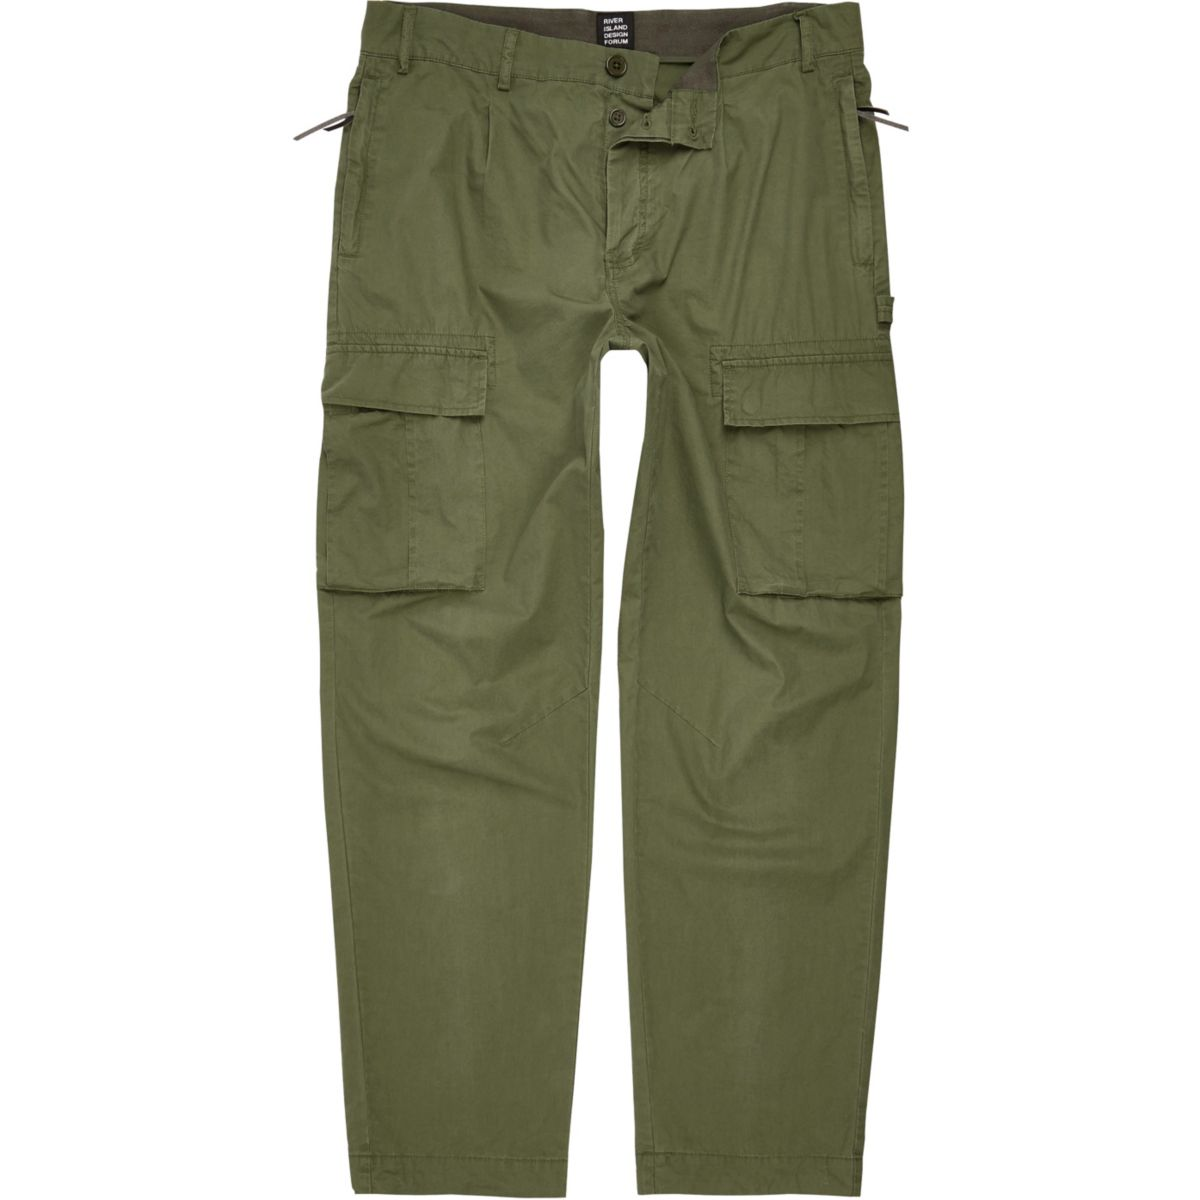 Oct 08, · Tommy Hilfiger Mens Pants Size Large Cargo Khaki Green Pockets Cotton Drawstring. Vintage Tommy Hilfiger Men's casual cargo pants. Size Large. The pants are an army green like color. A drawstring waistband, side pockets, front cargo pockets. Seller .